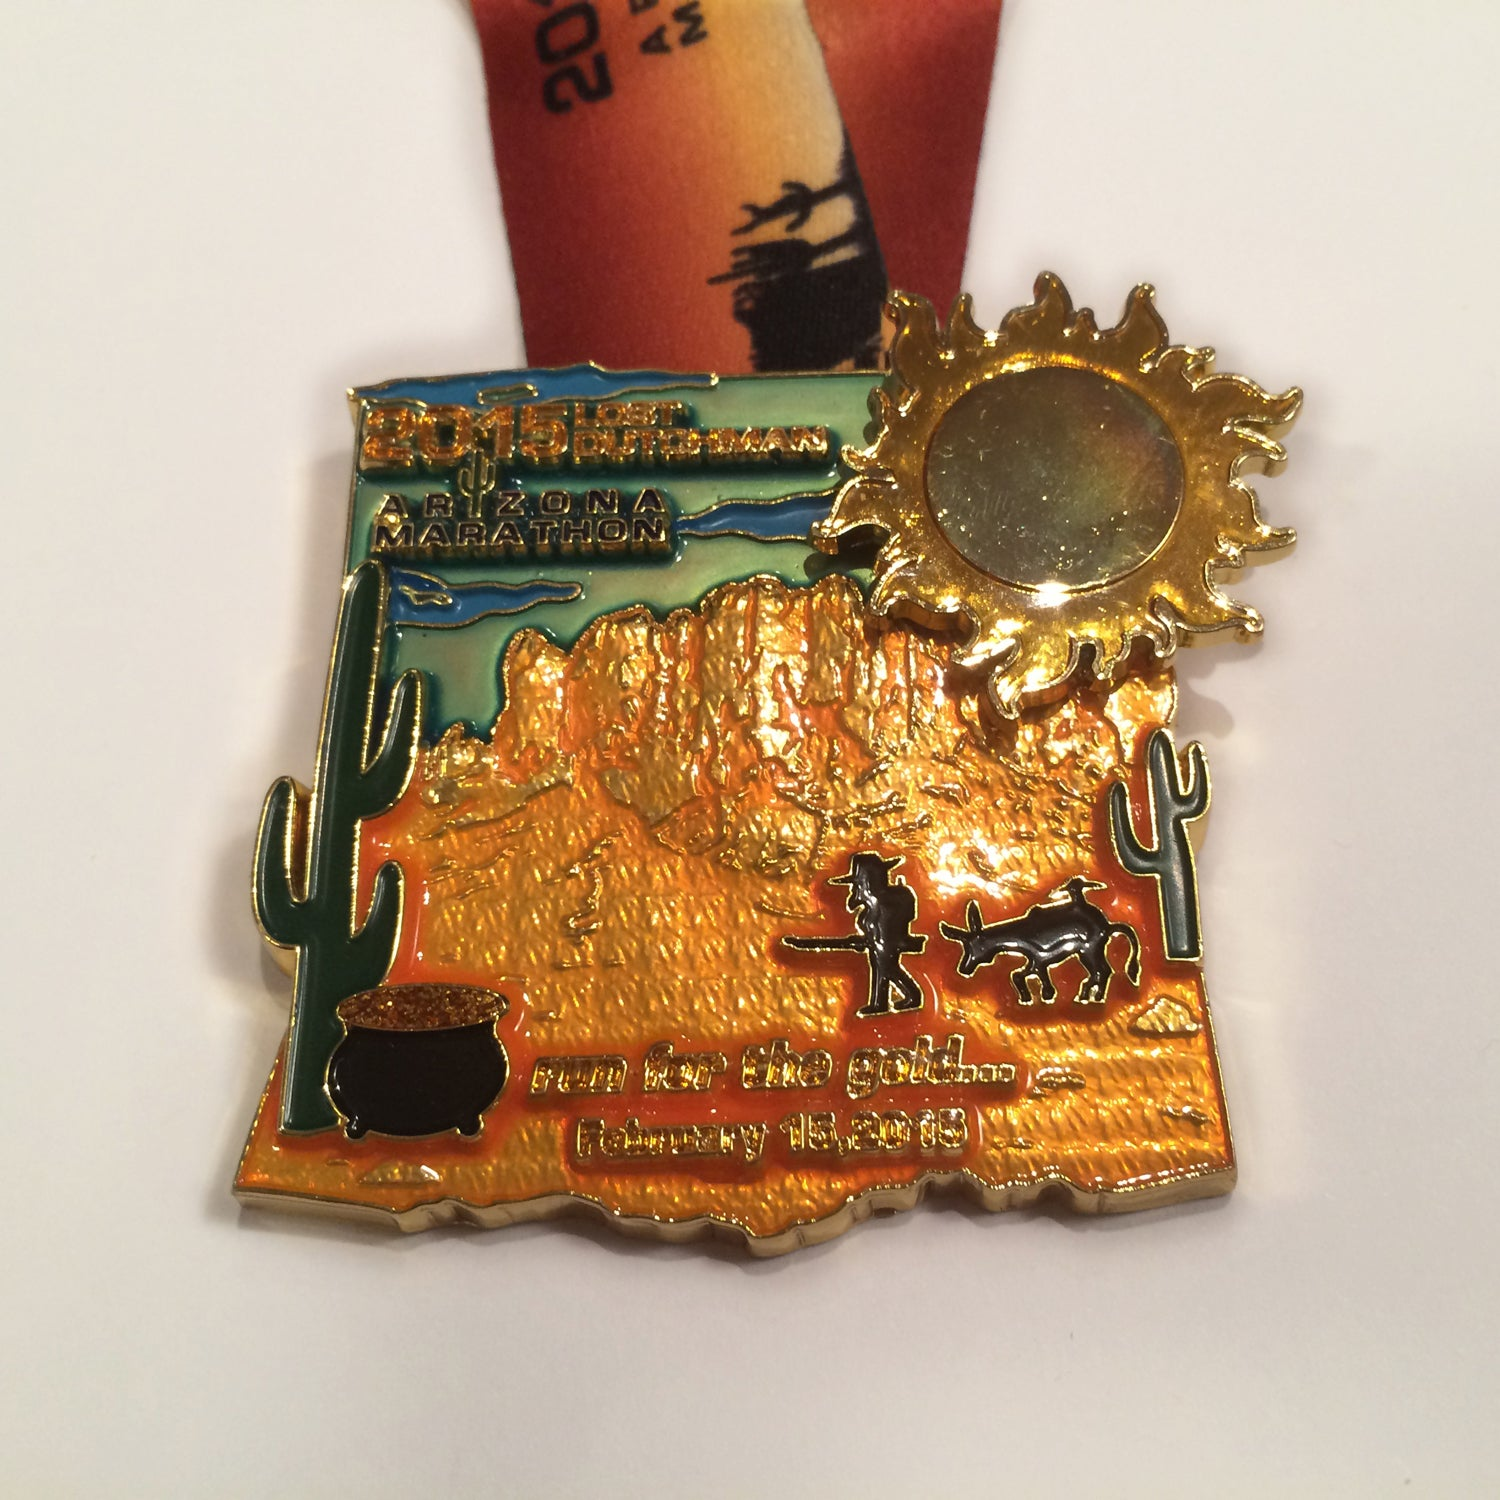 Solera: It's fitting that a race that runs through the burnt reds and oranges of the southwestern desert under a perfect blue sky should have a colorful medal. Organizers ditched their usual subdued approach and went for a full explosion of color. As a novelty bonus, the sun's heat rays rotate.